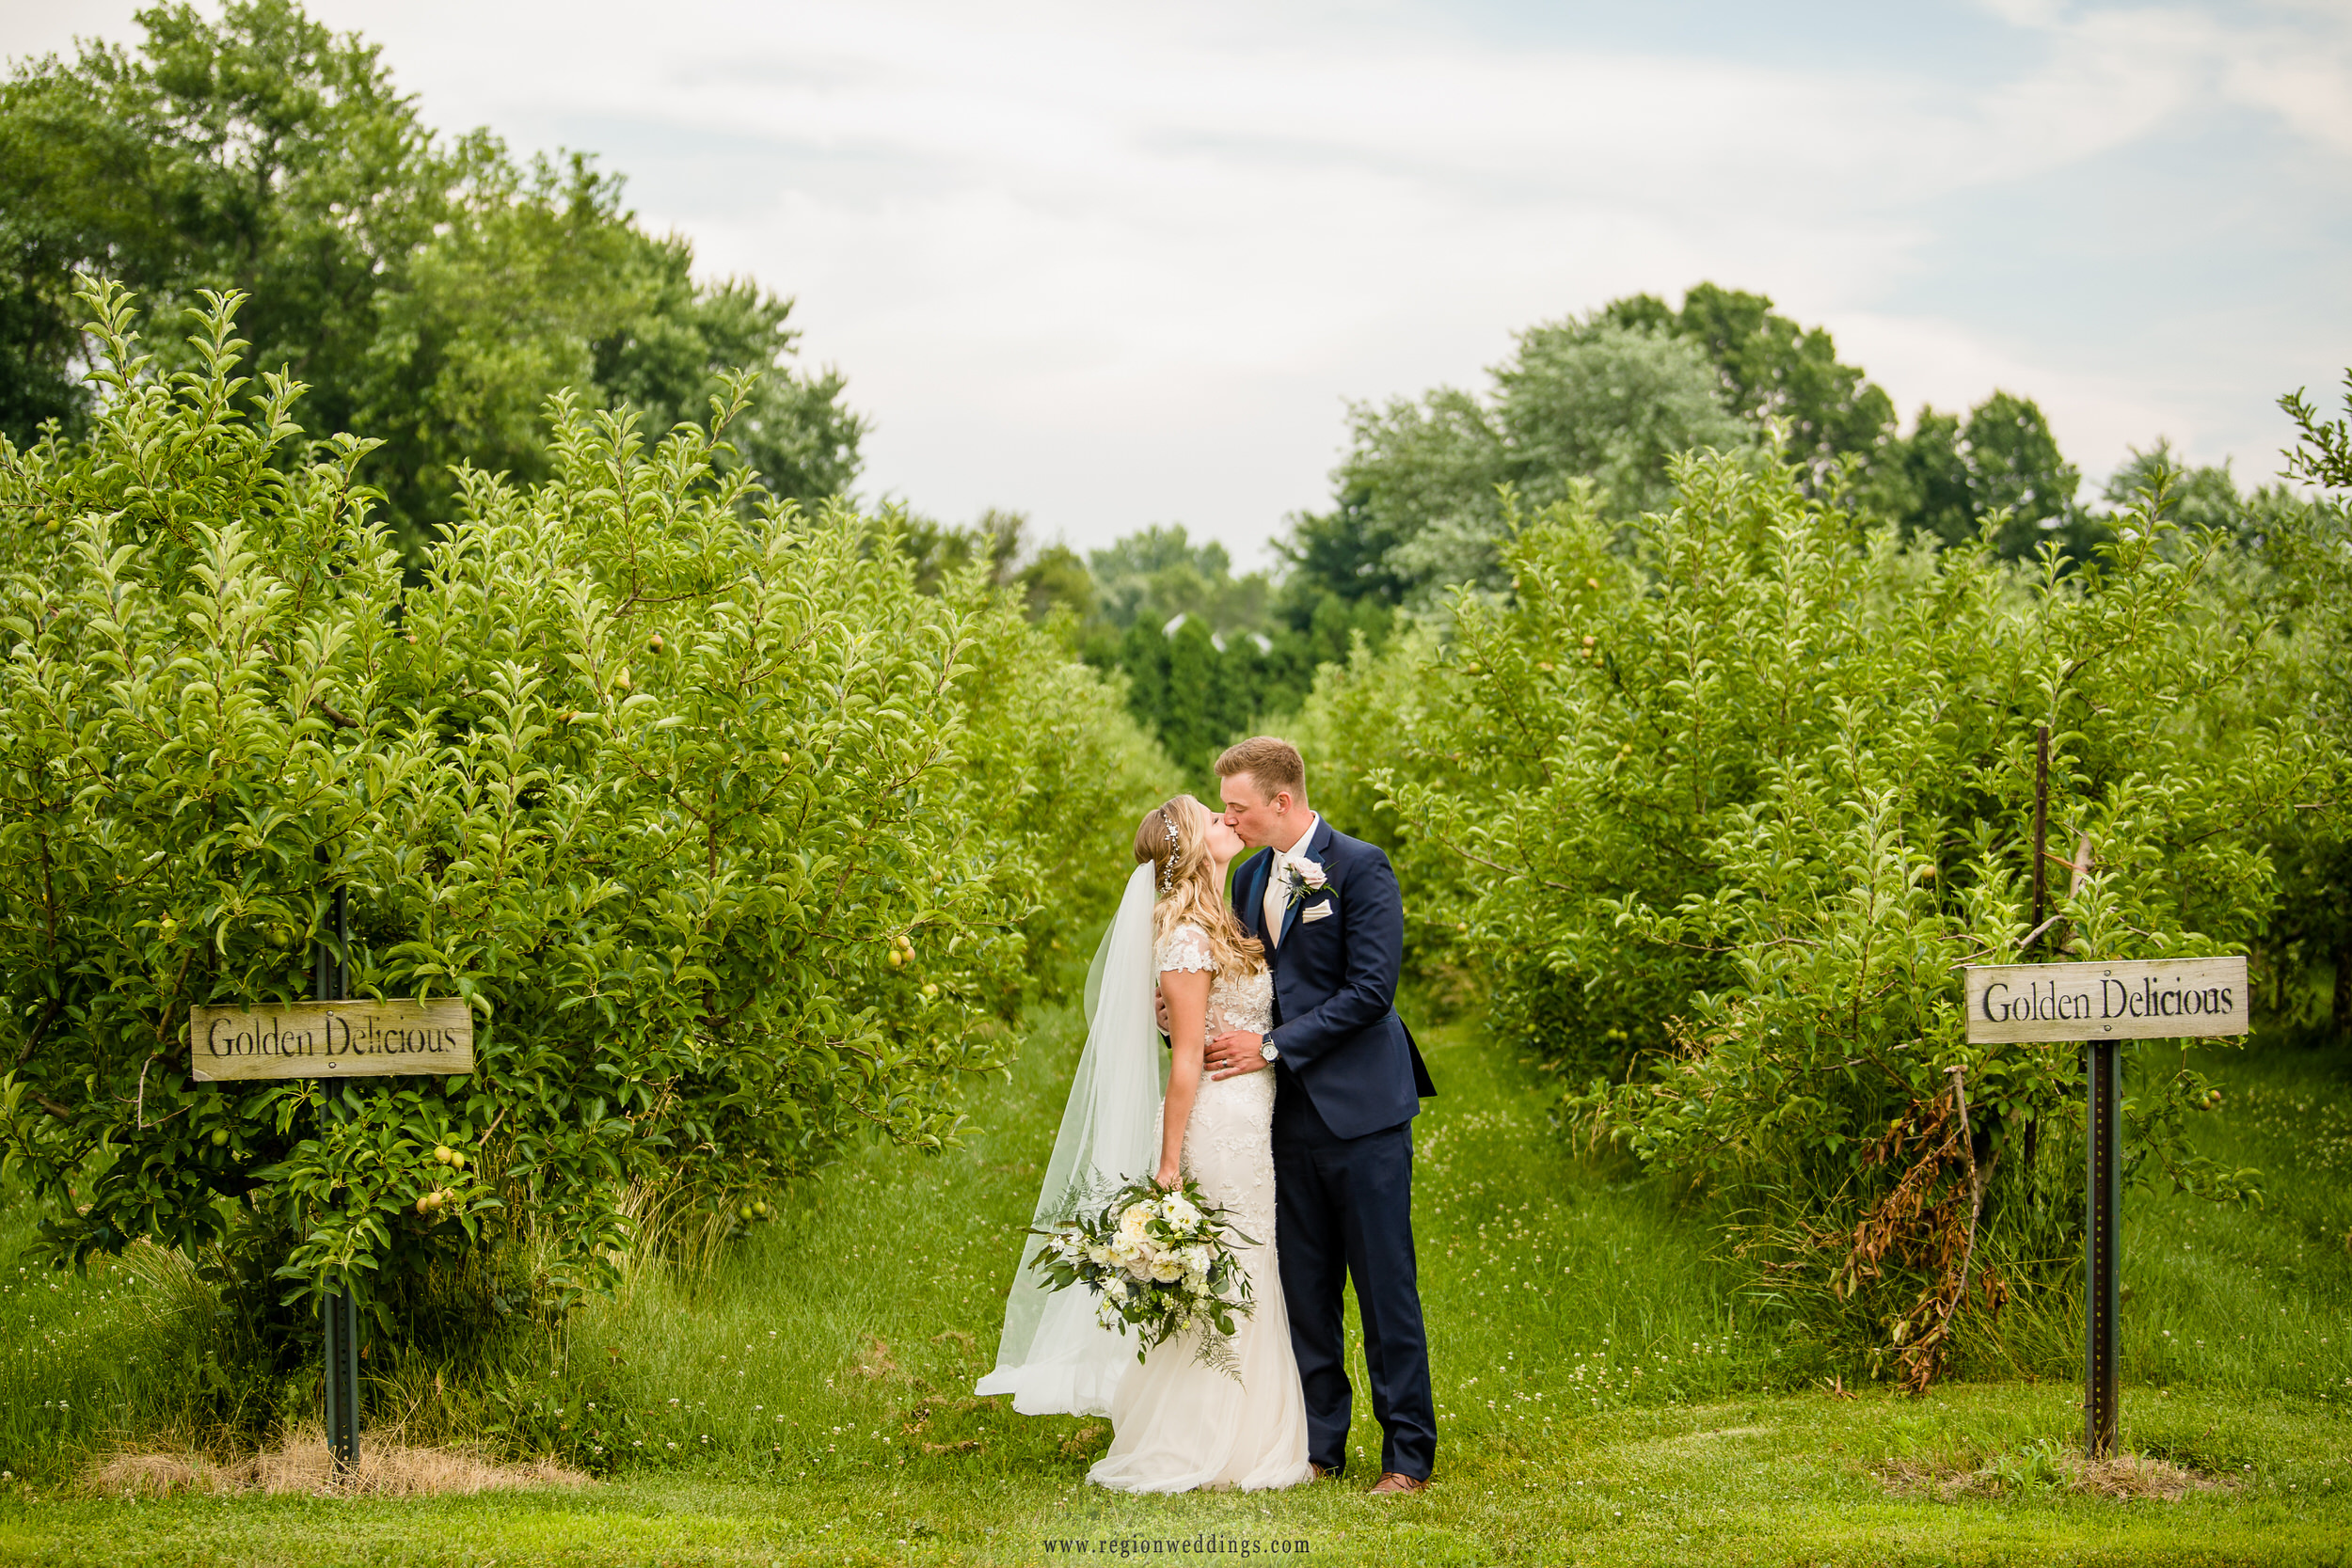 The bride and groom choose golden delicious apples at County Line Orchard.